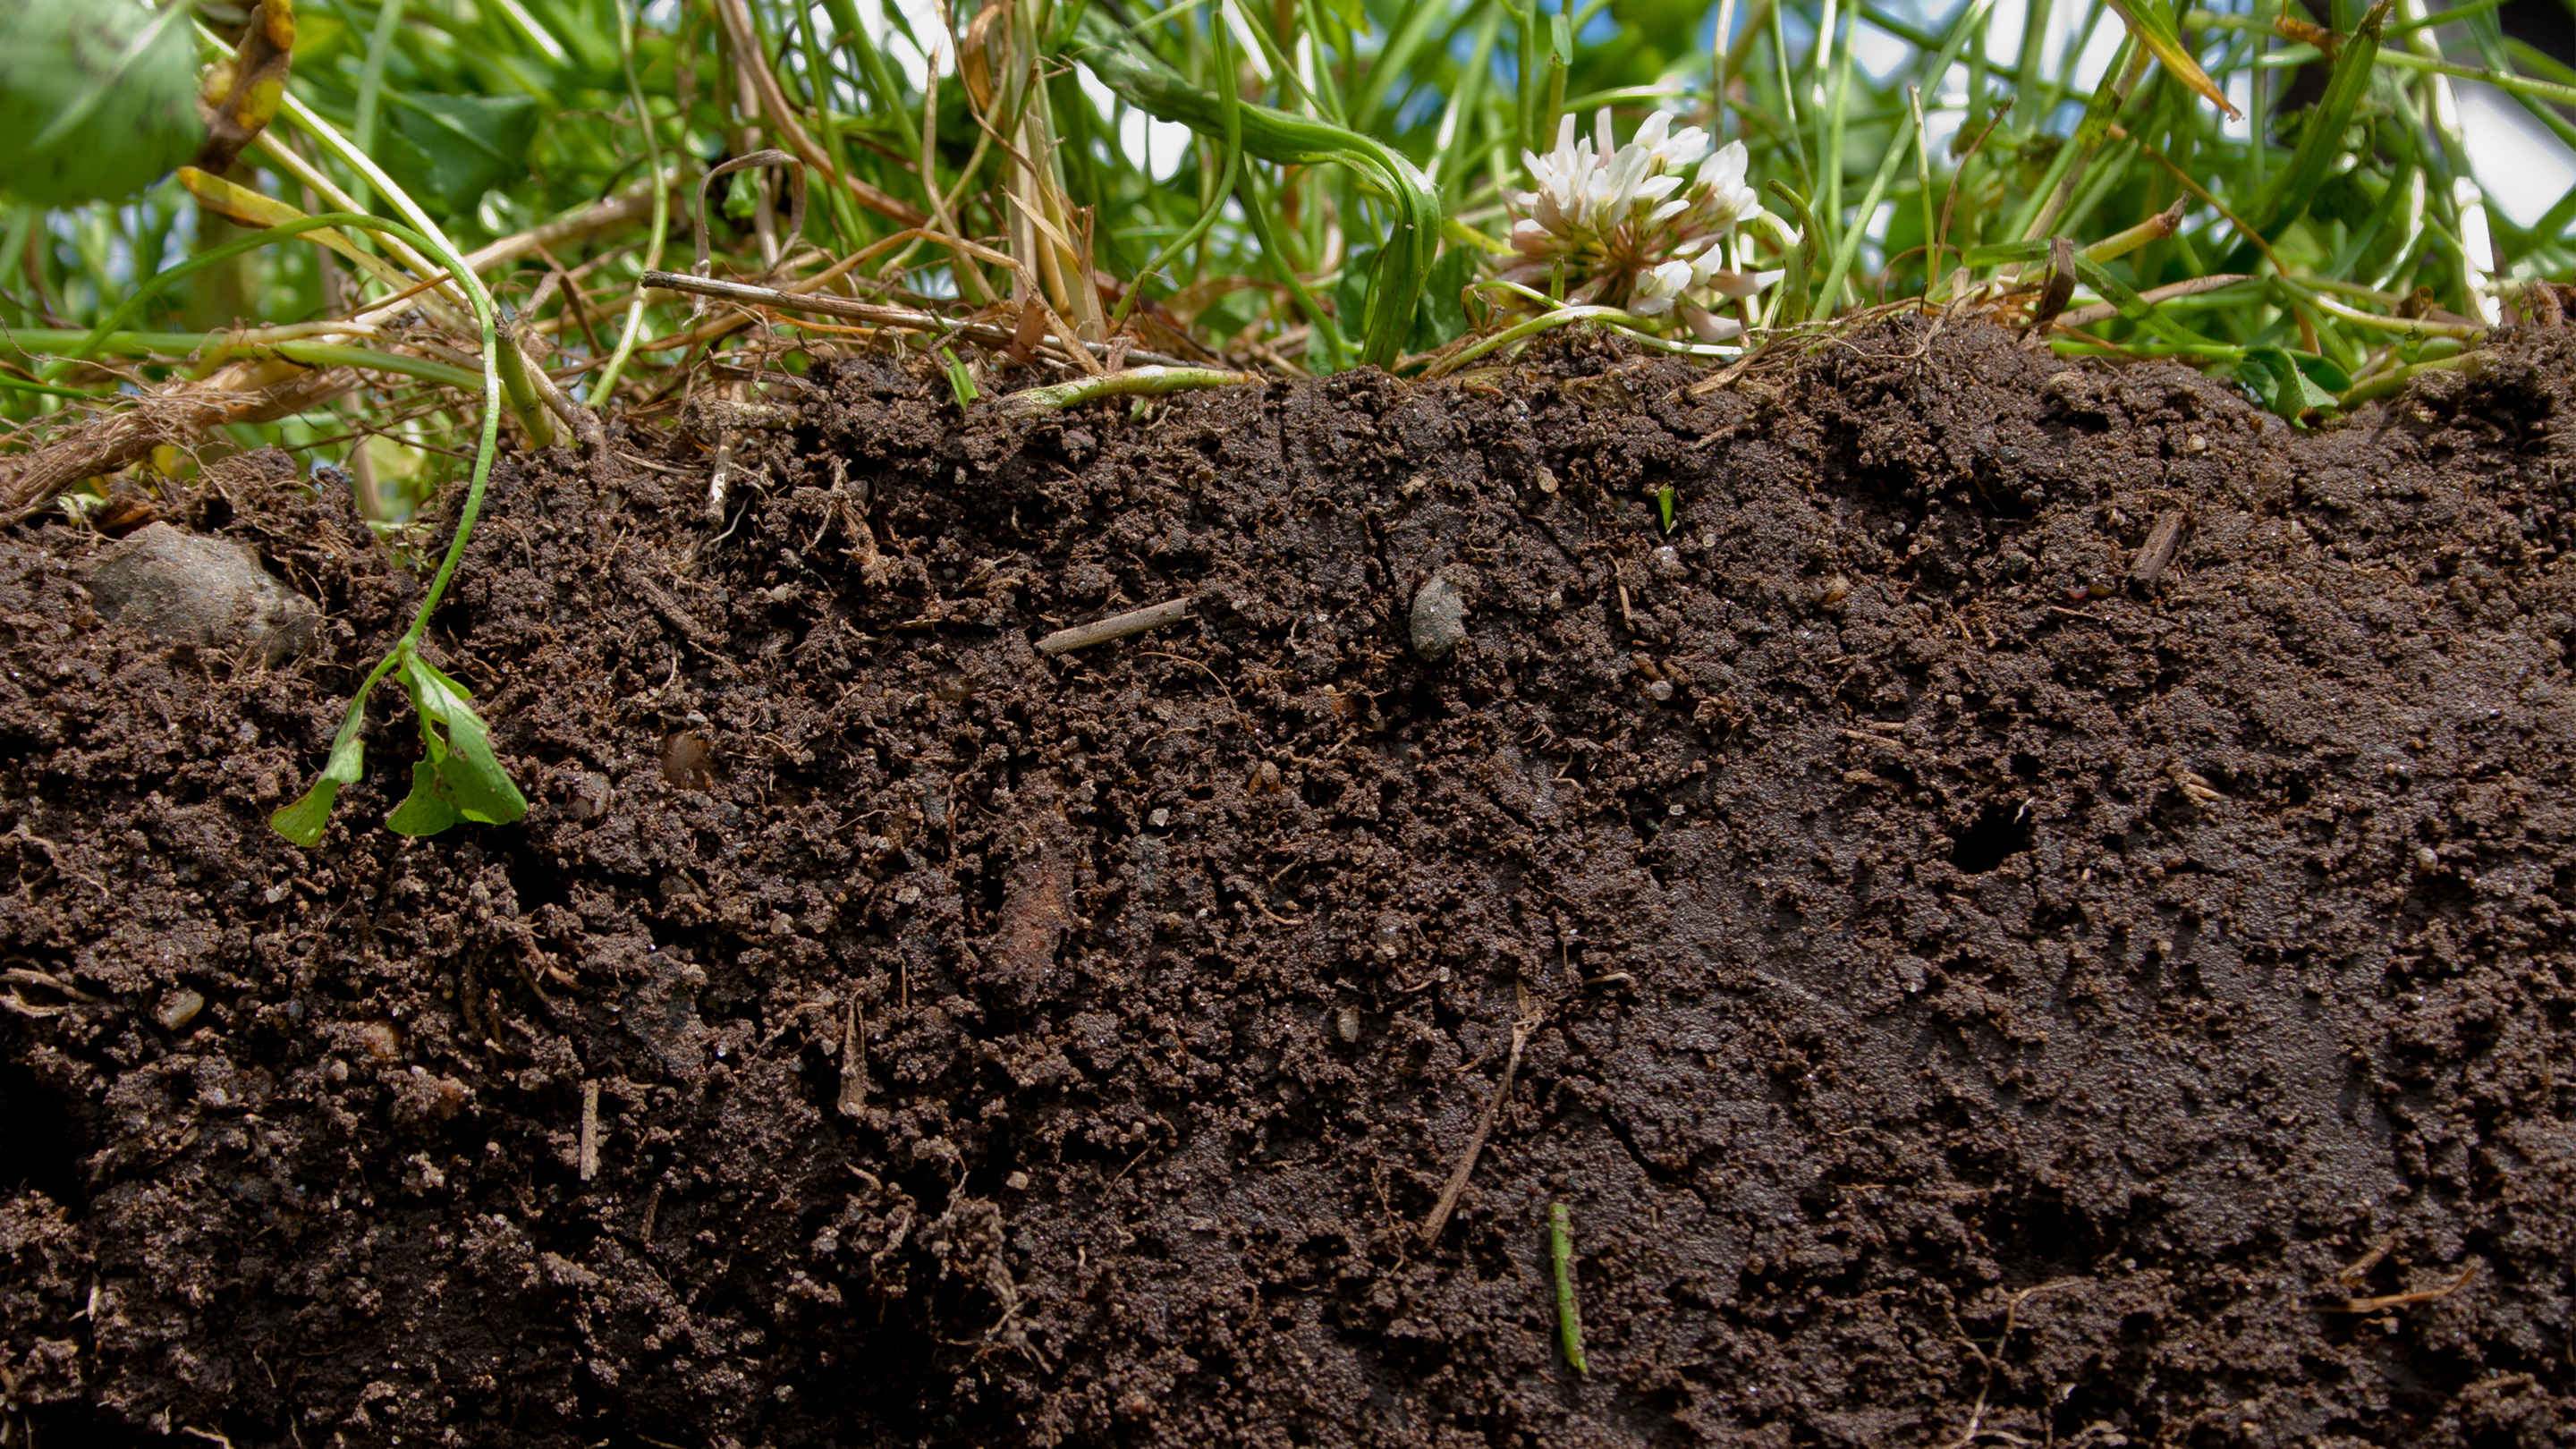 A cutaway of thick brown soil with grasses on top.